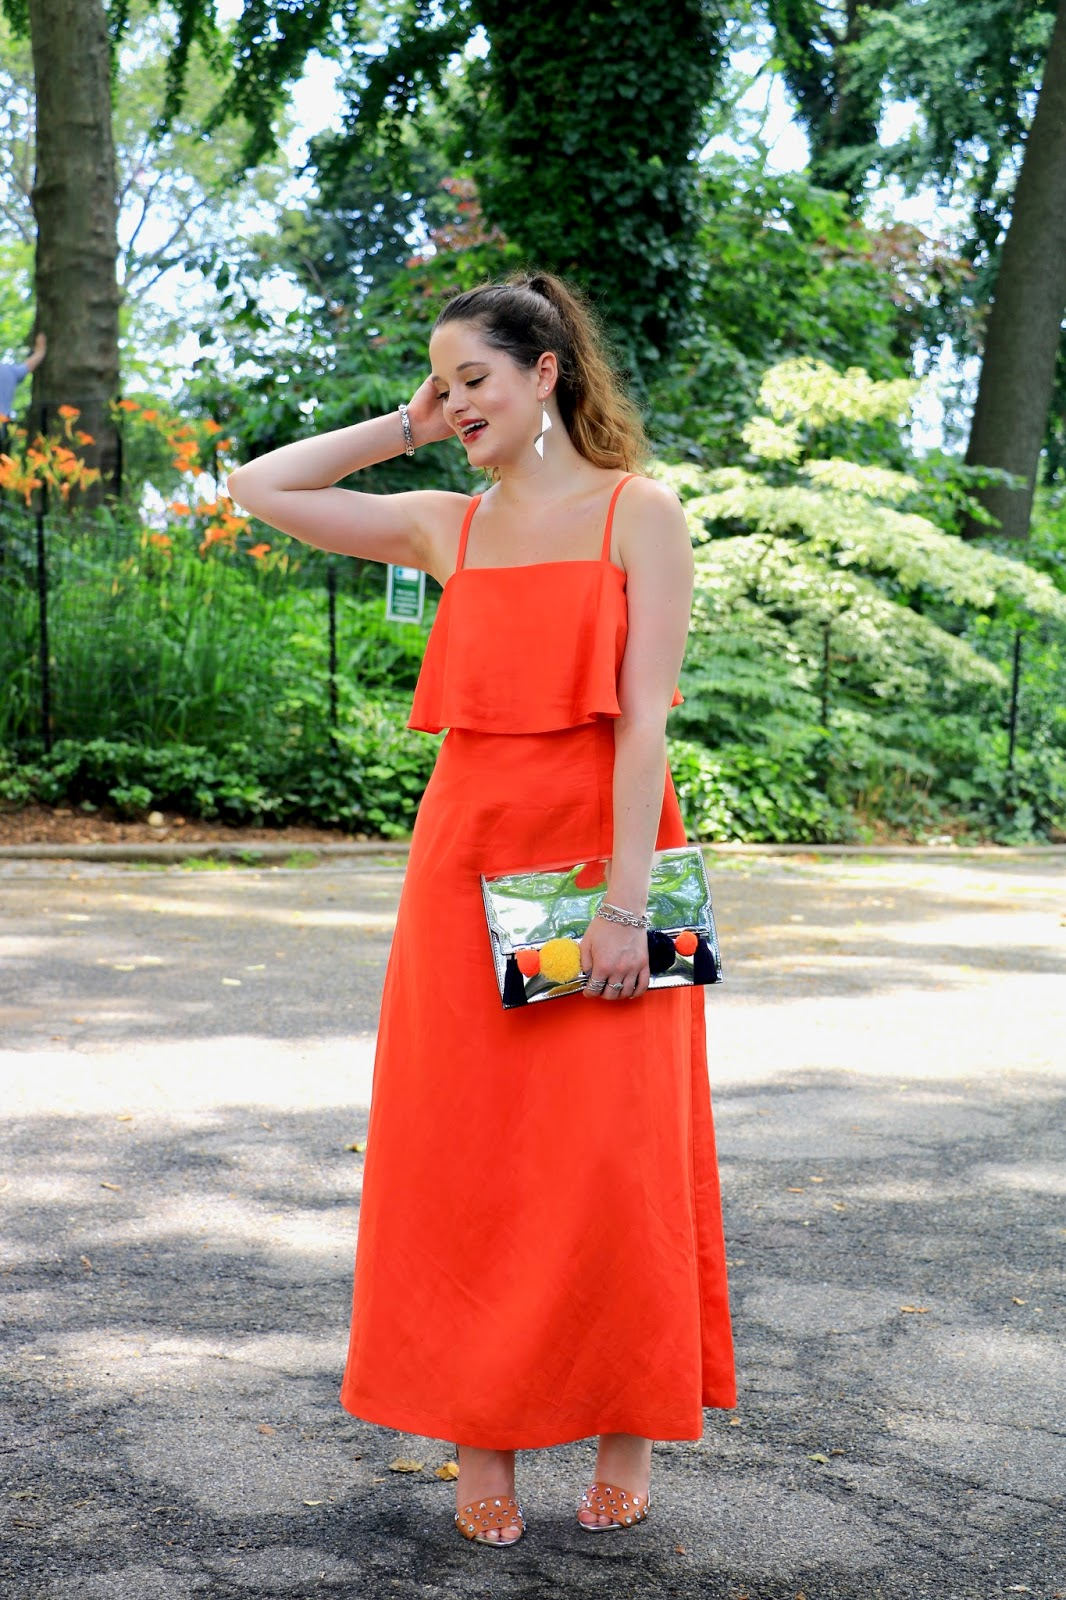 Fashion blogger Kathleen Harper of Kat's Fashion Fix showing how to wear orange maxi dress